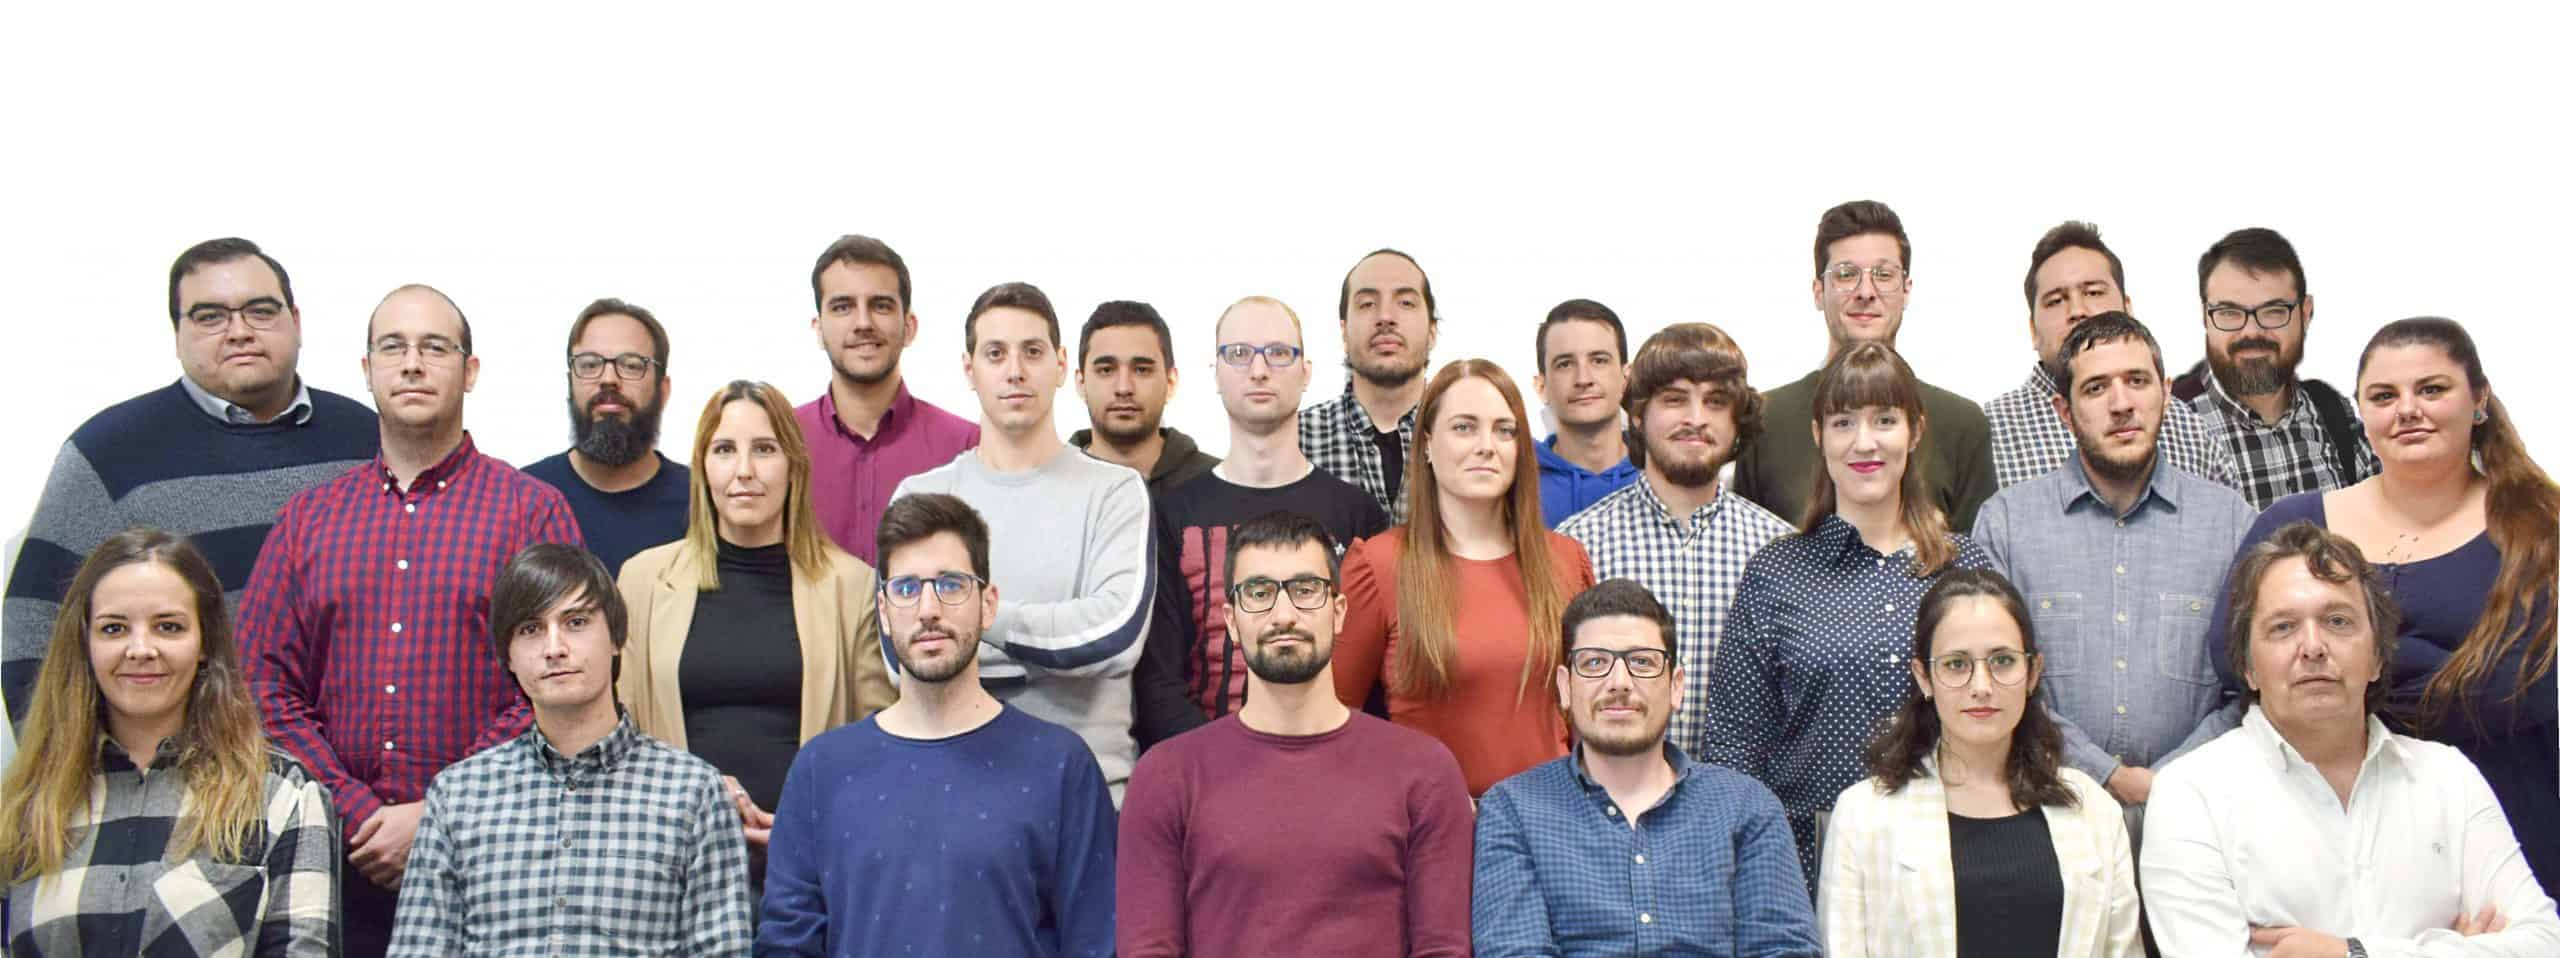 The startup HOPU, selected by the 5G Barcelona acceleration program and Wayra (Telefónica)